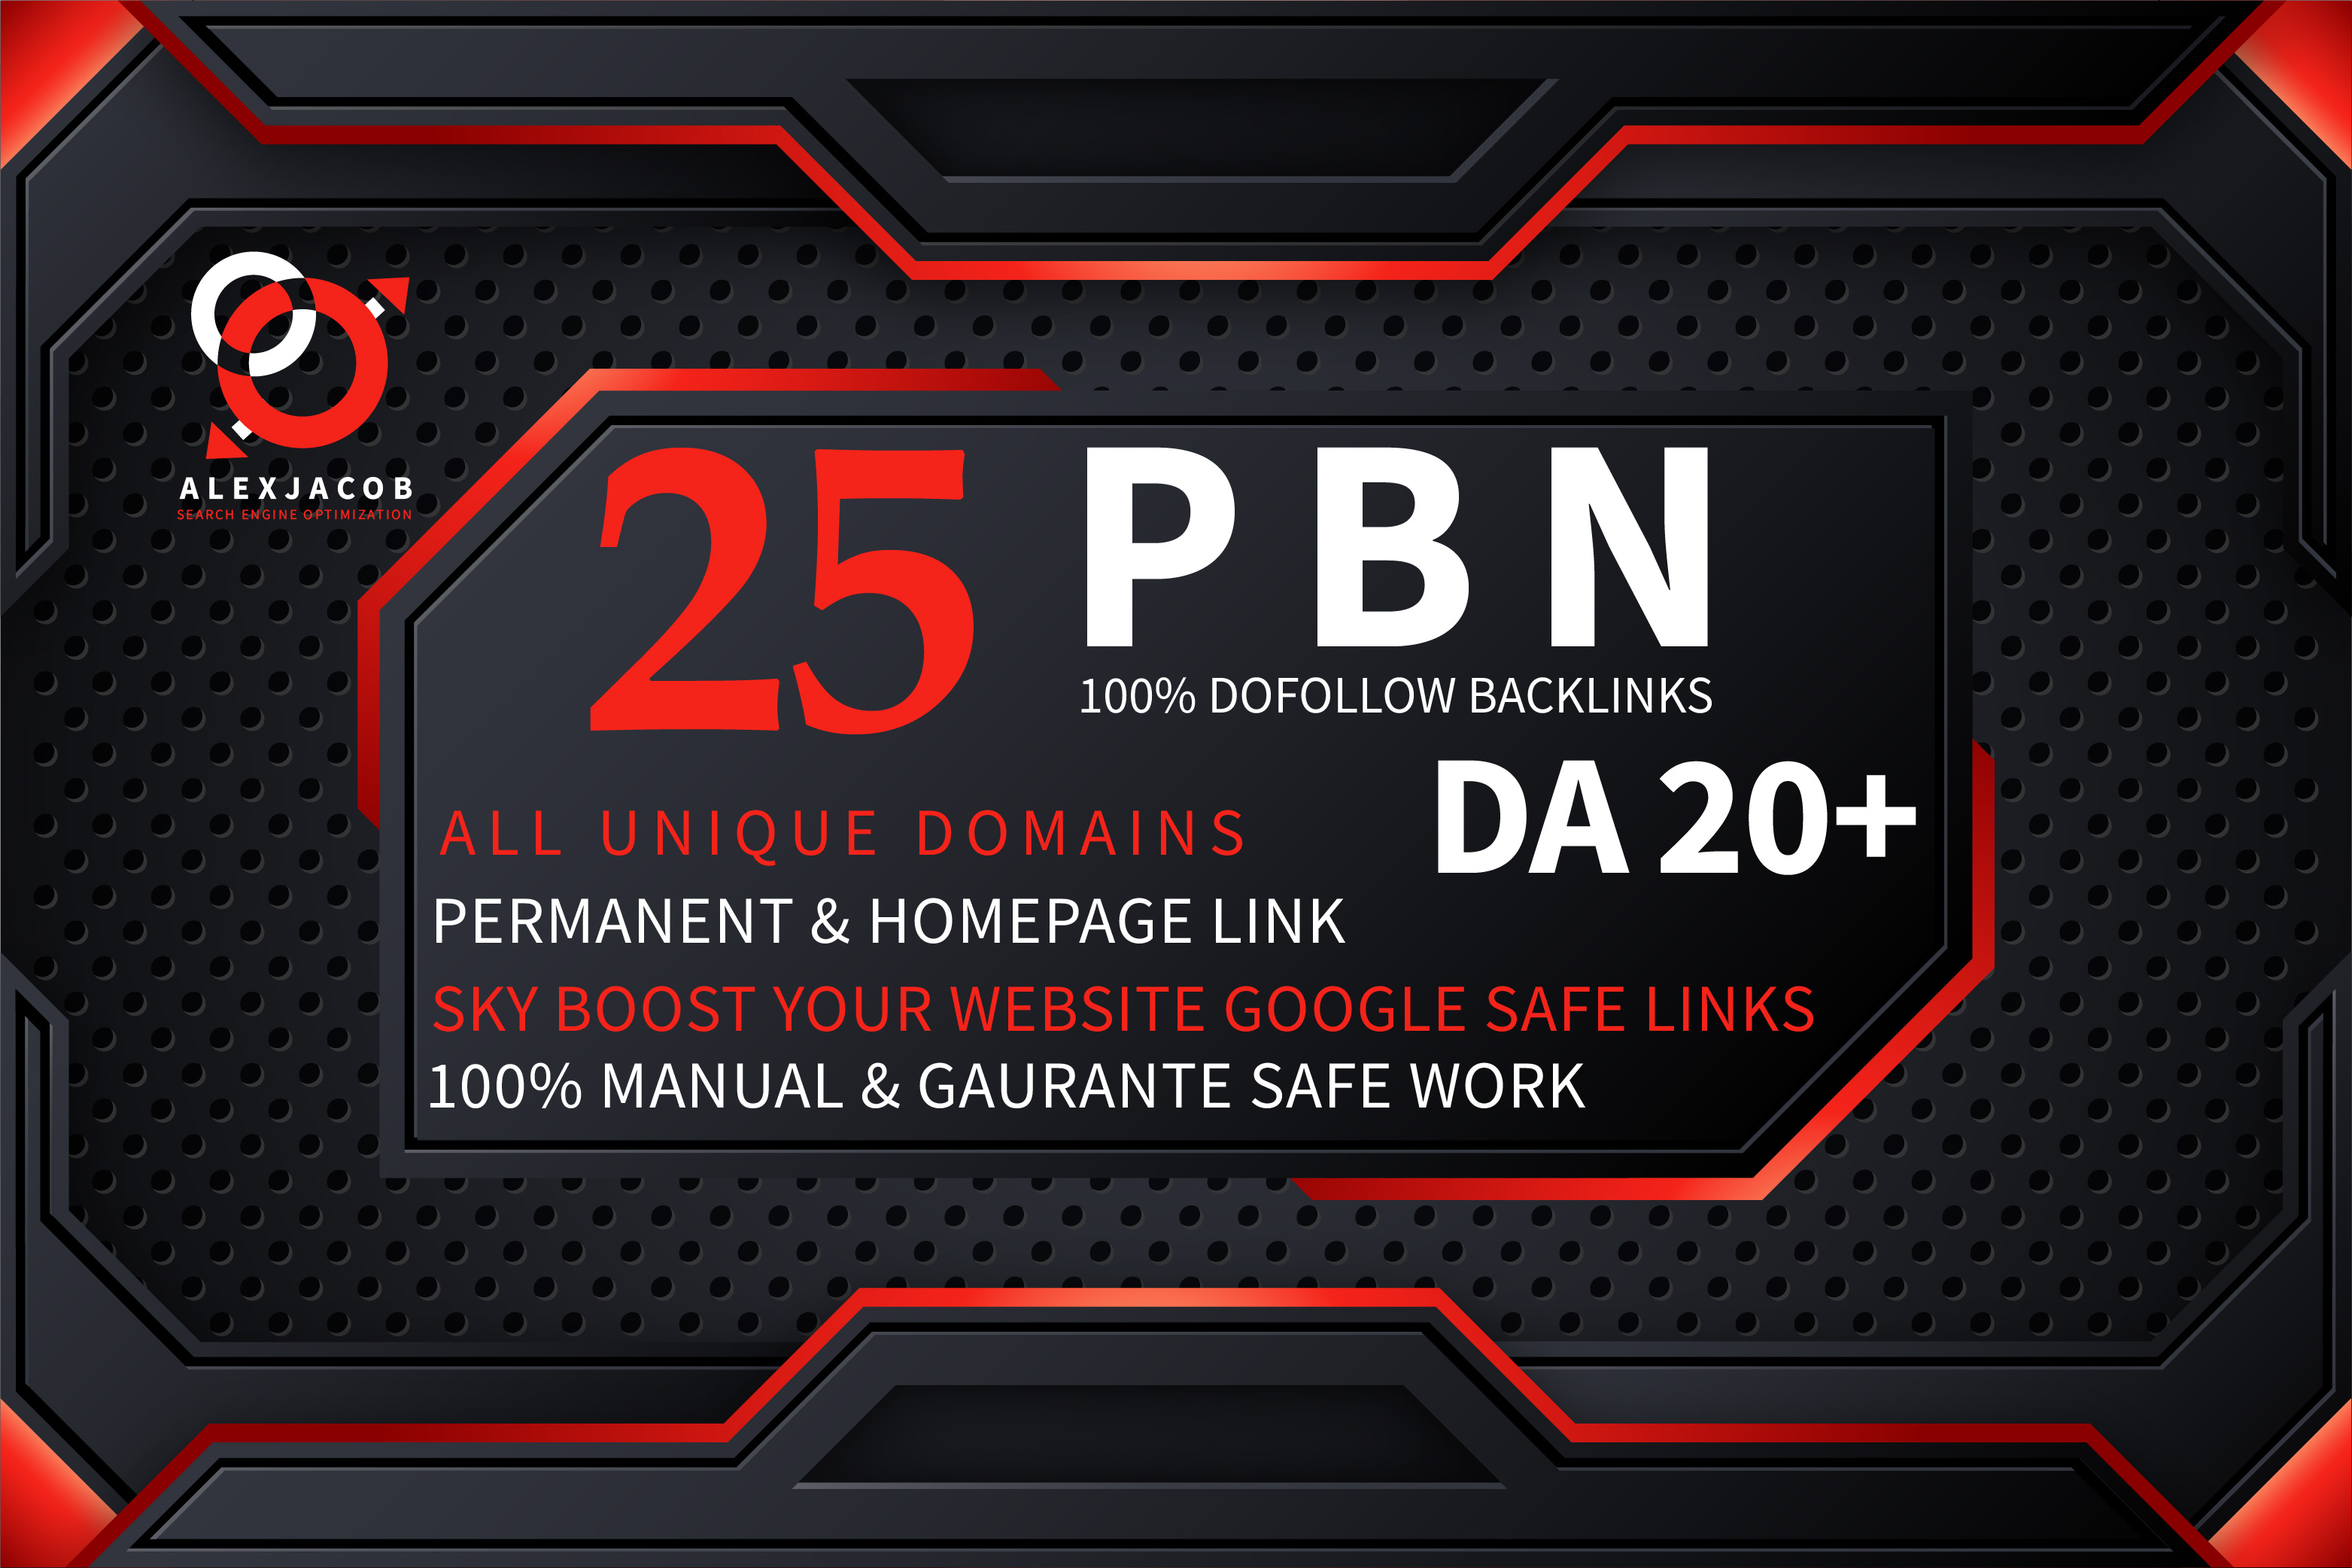 Build 25 High DA PBN Backlinks Dofollow Permanent Boost your website Ranking